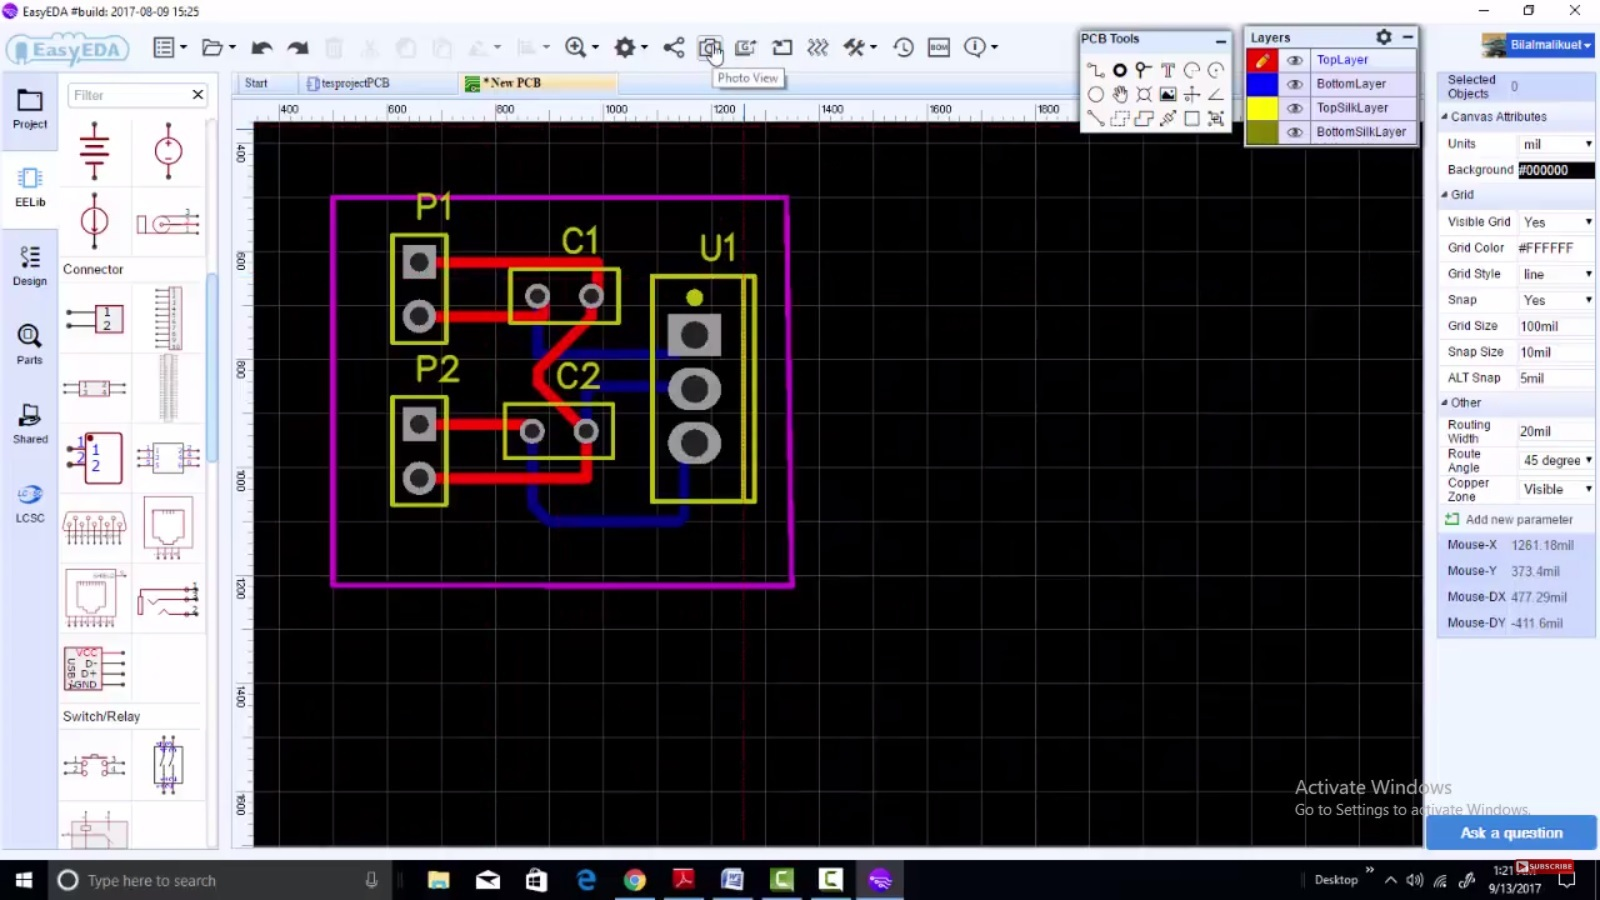 EasyEDA new desktop software for PCB and schematic design